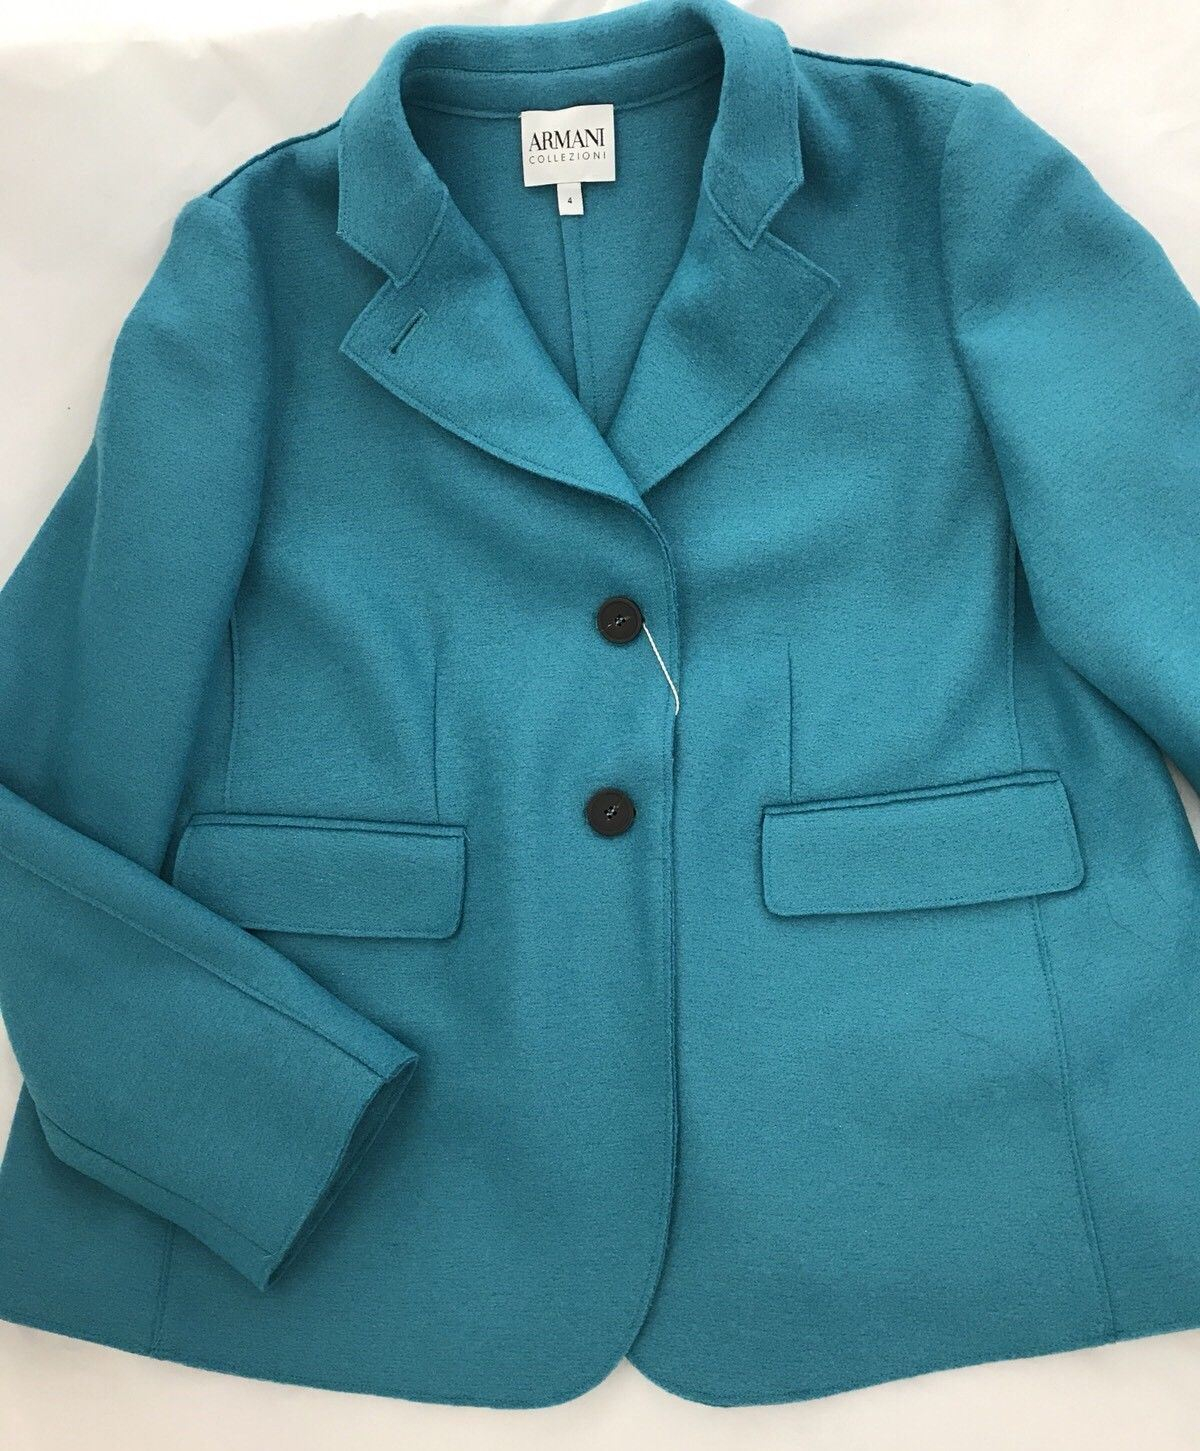 NWT $1195 Armani Collezioni Women's Caban Coat Size 4 (40 Euro) 100% Wool - BAYSUPERSTORE